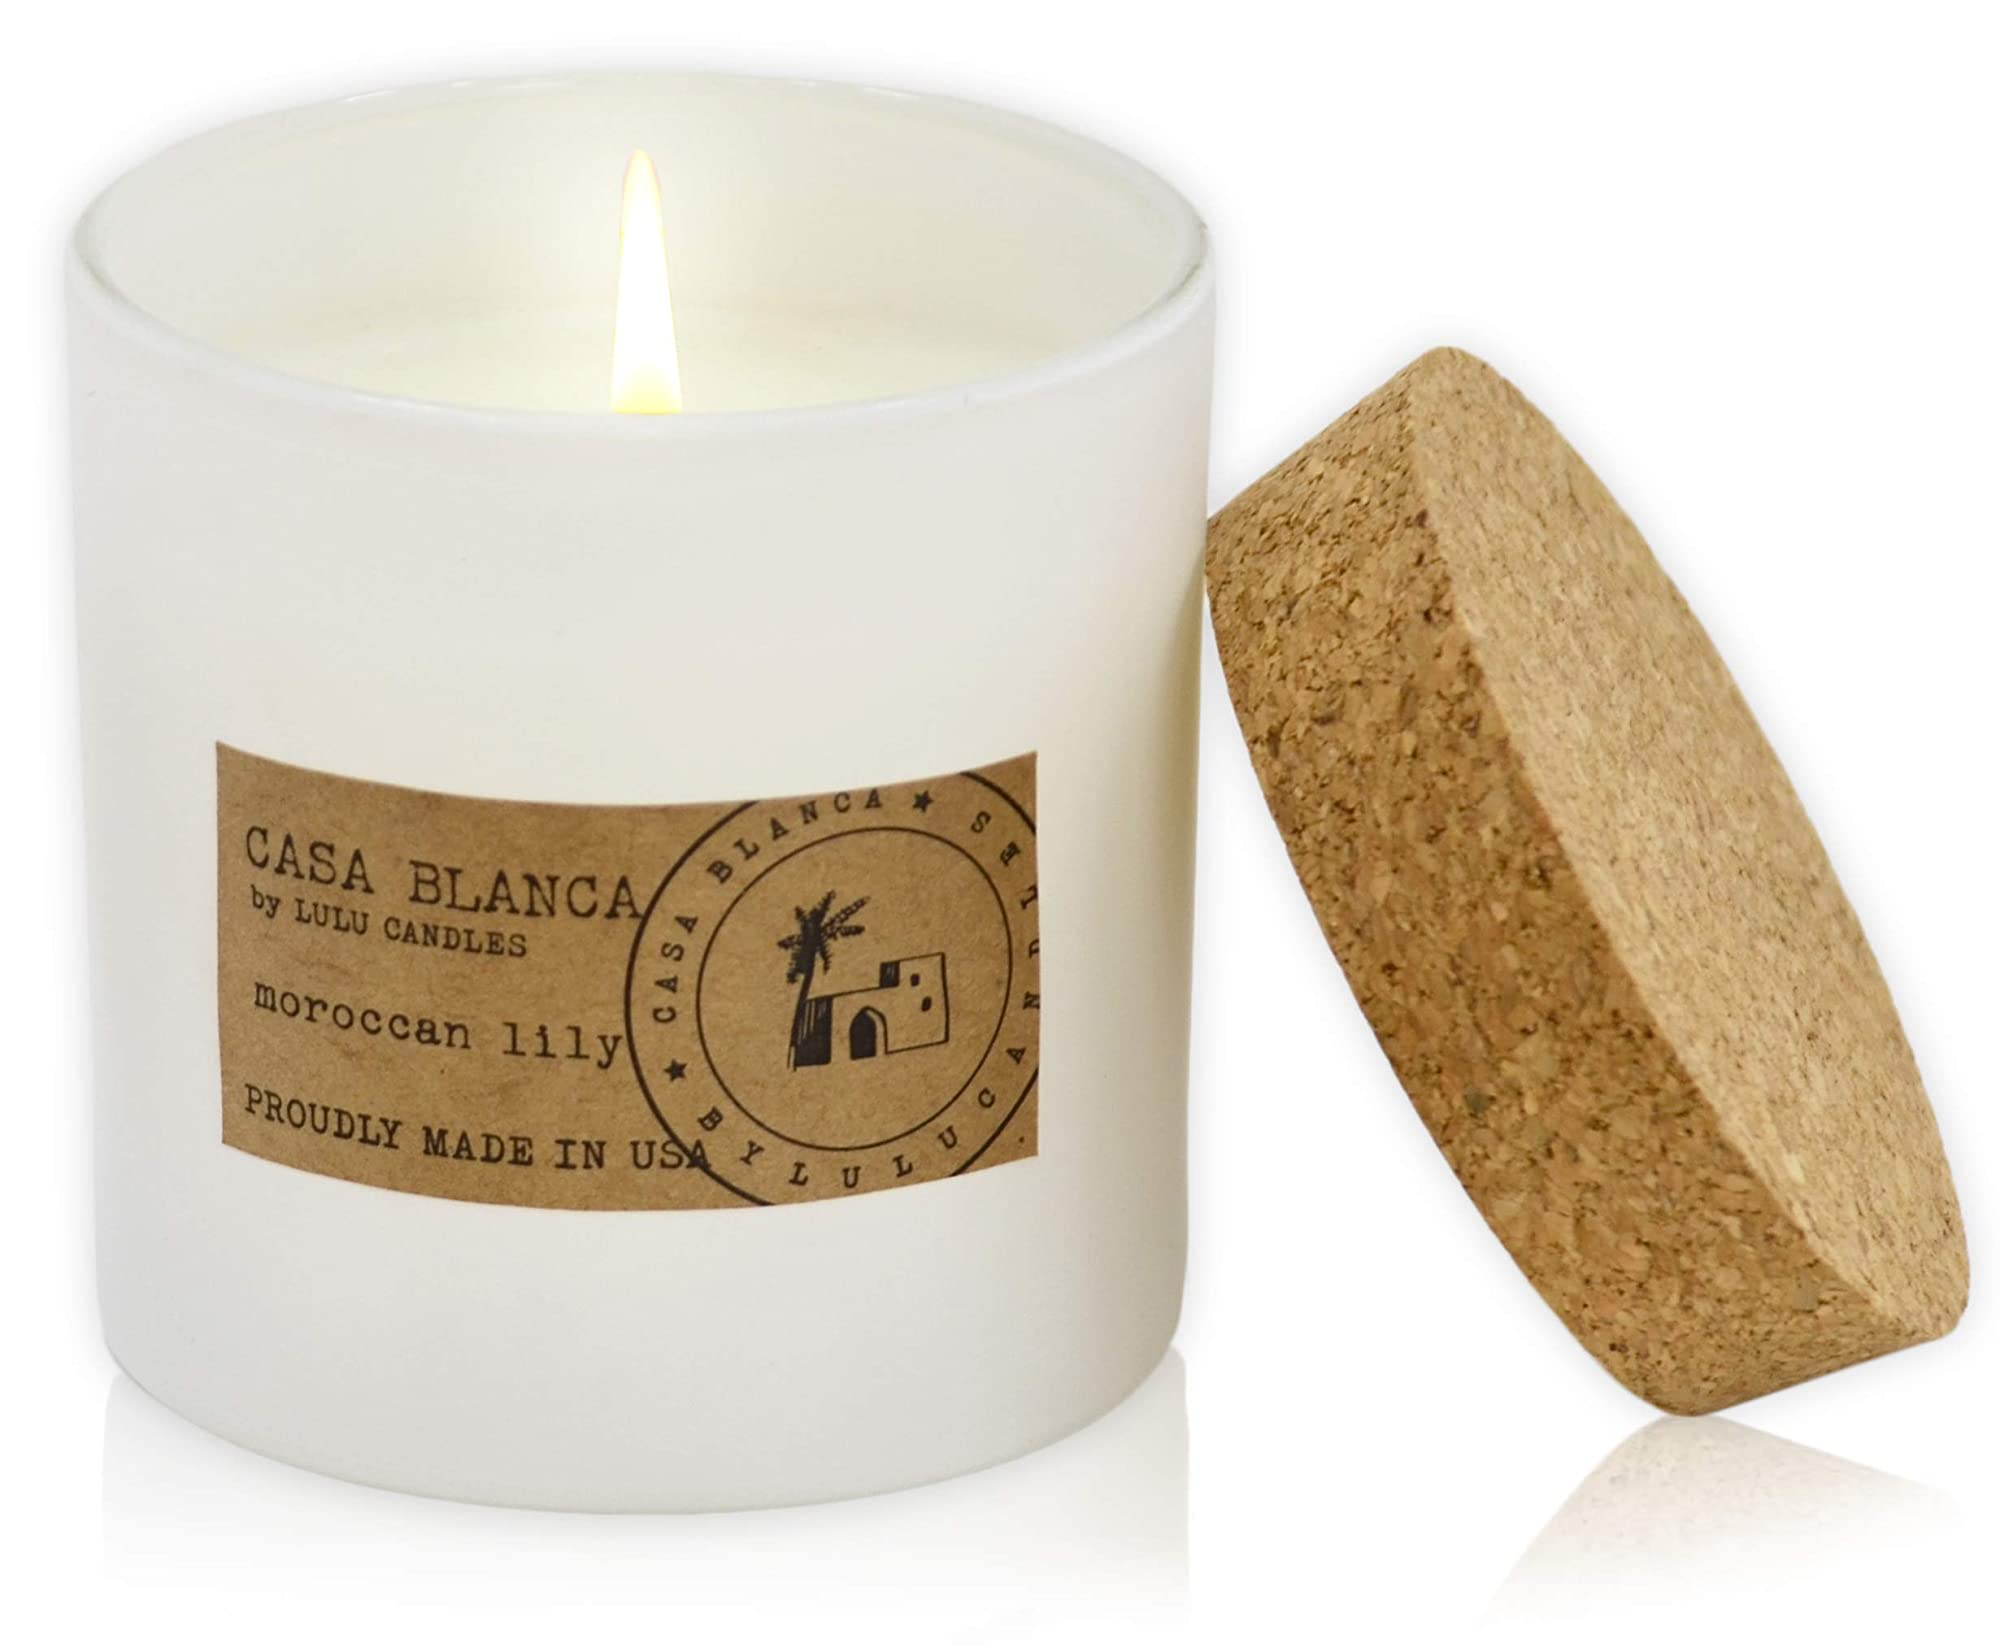 Luxurious And Highly Scented Candles